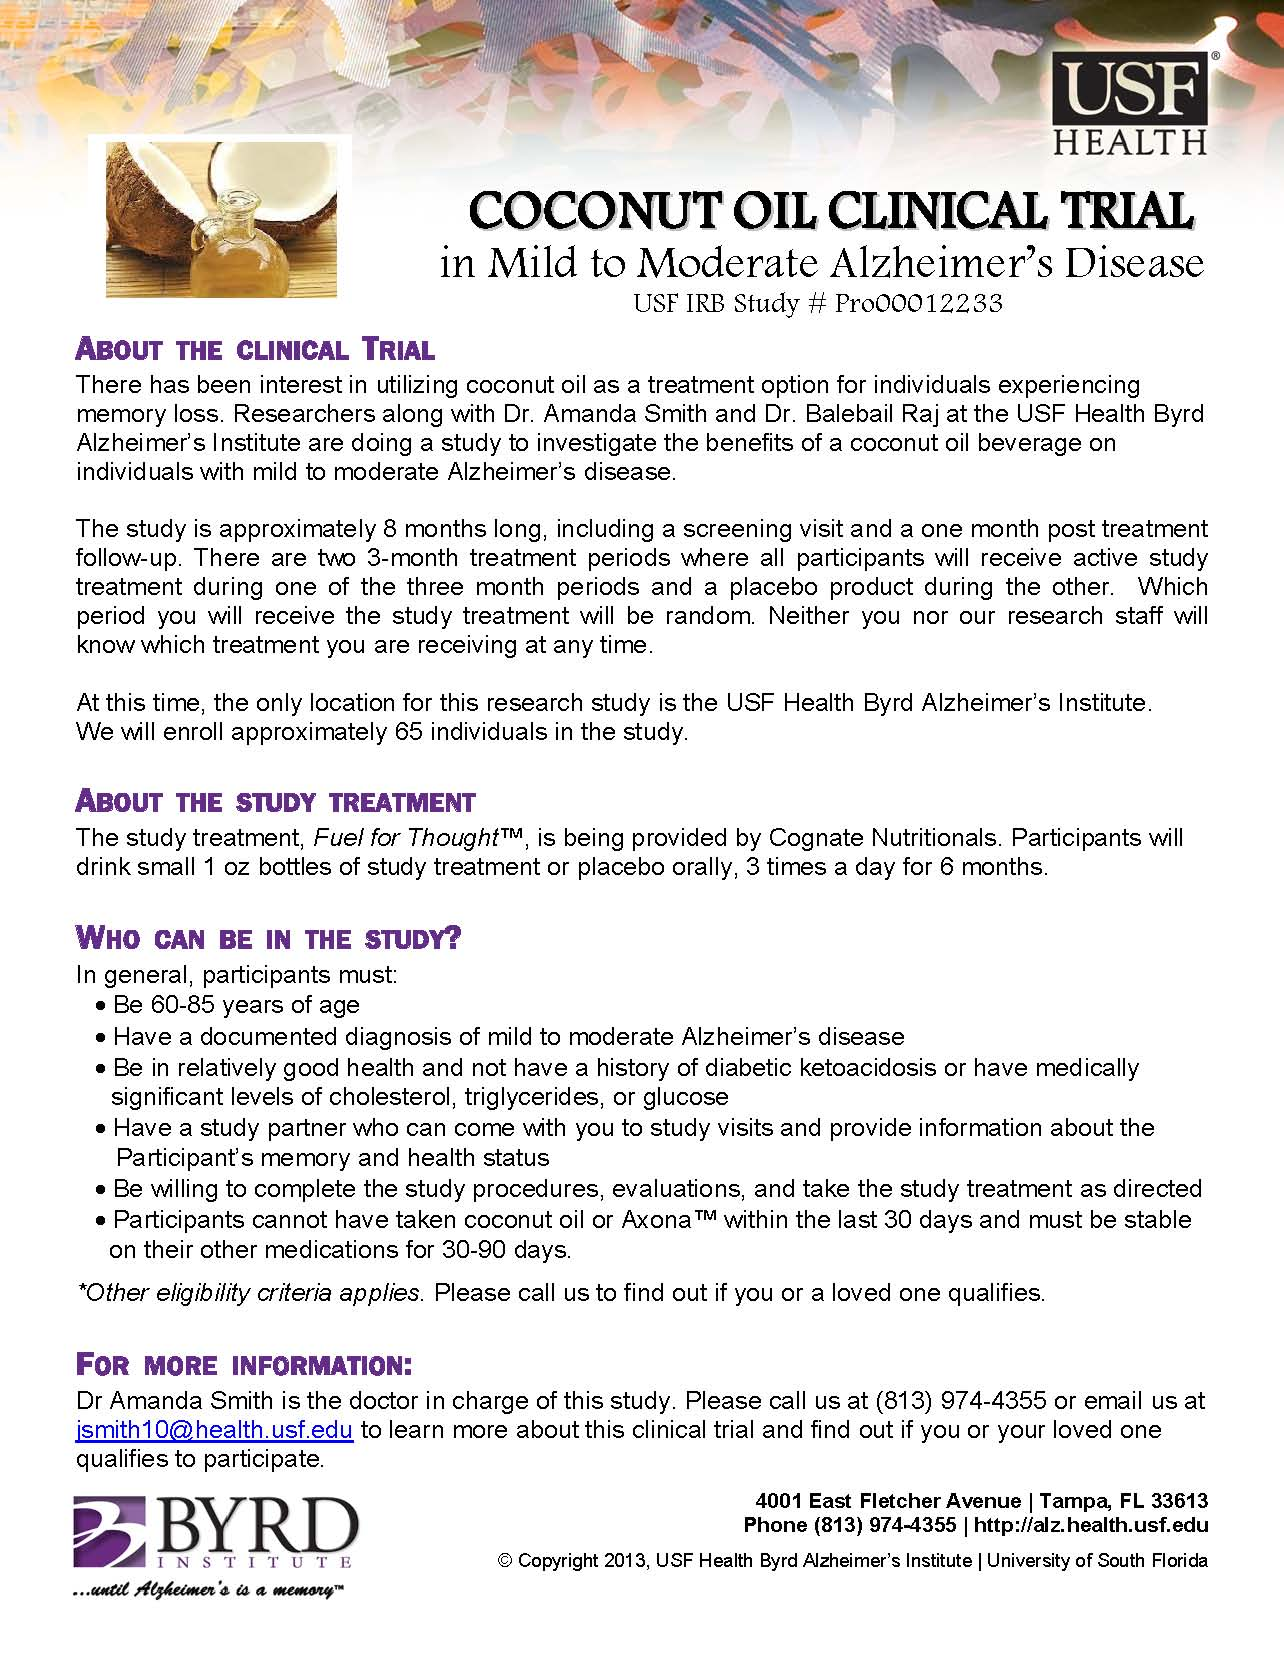 CoconutOilStudyFlyer62013